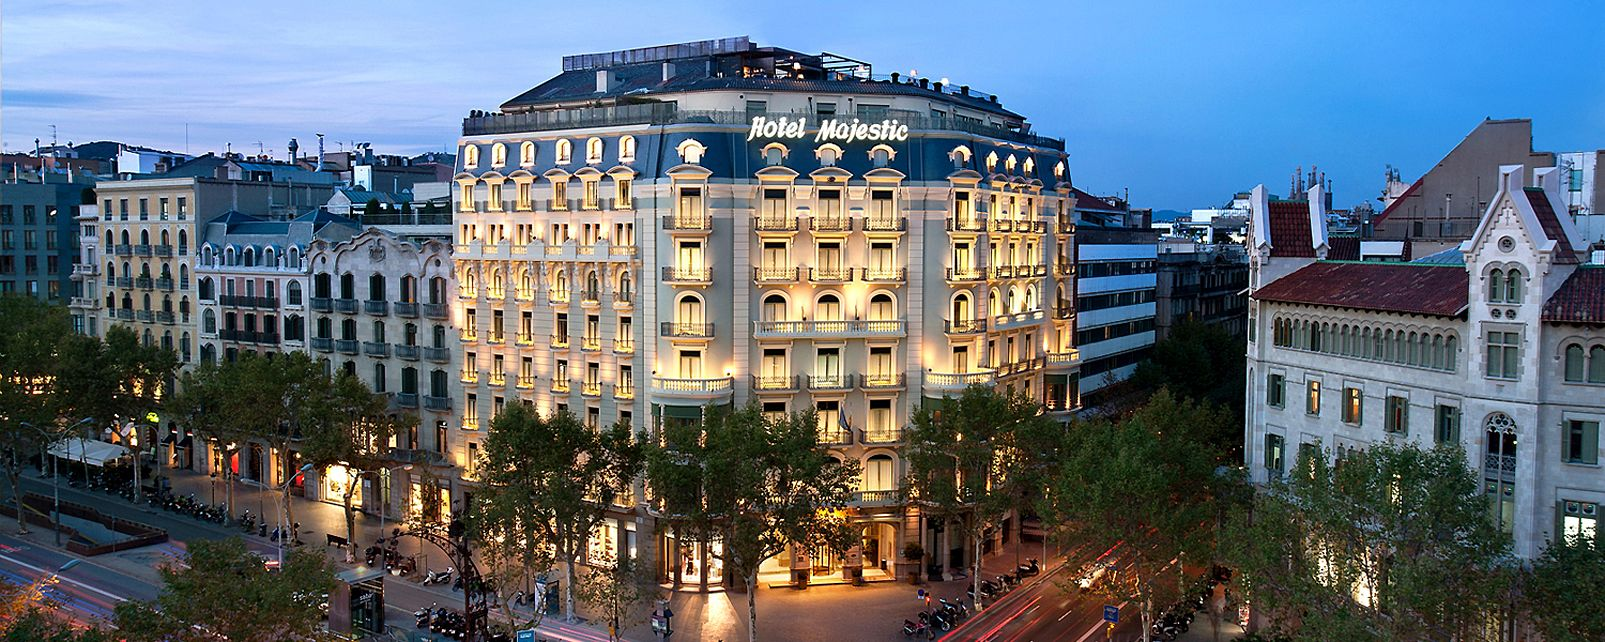 Hôtel Majestic Hotel and Spa Barcelona